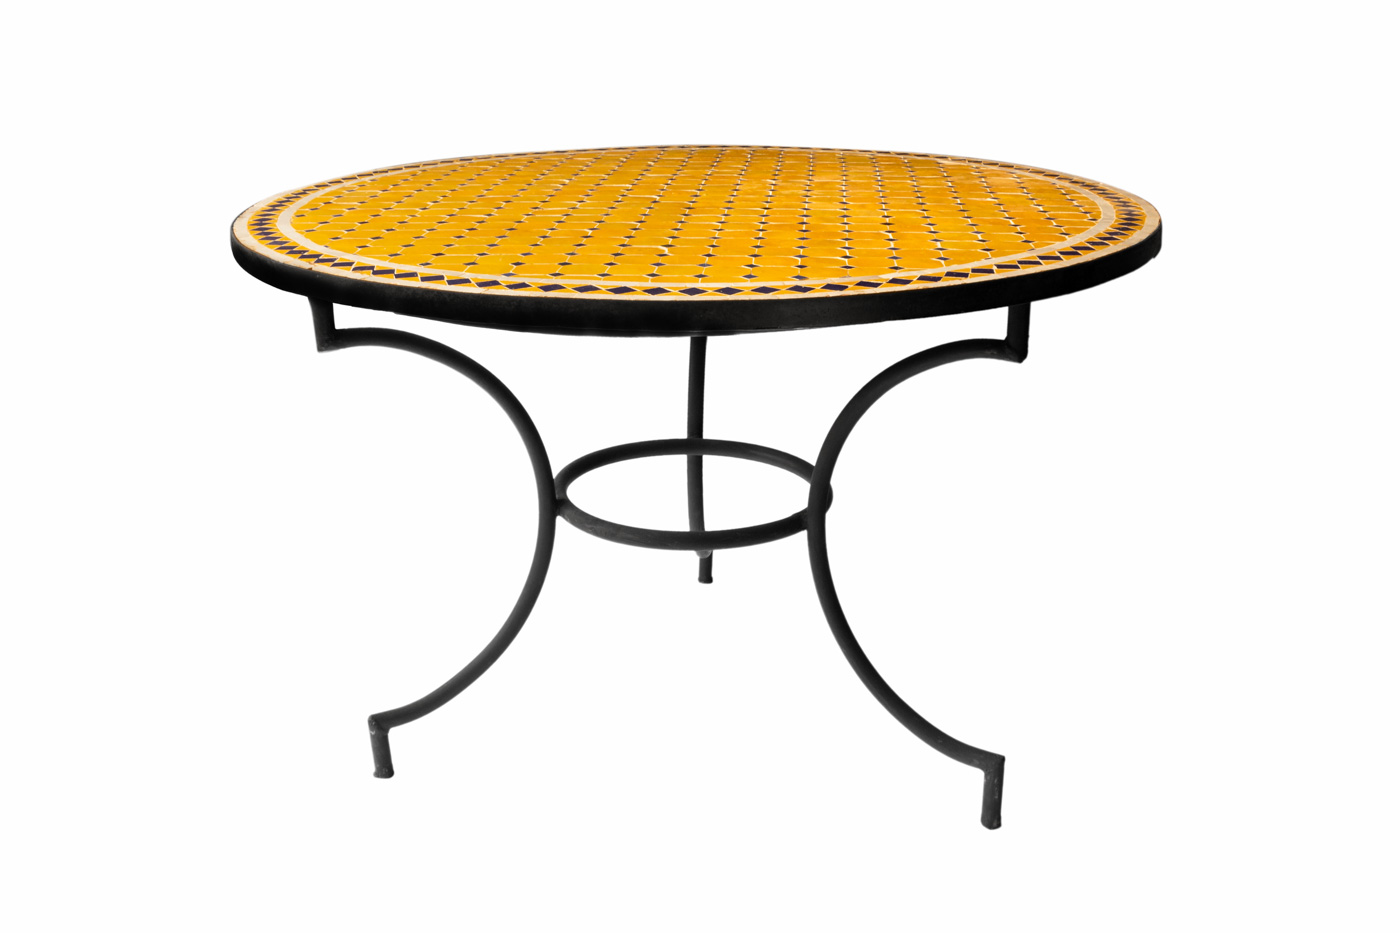 Moroccan traditional mosaic table, yellow-white